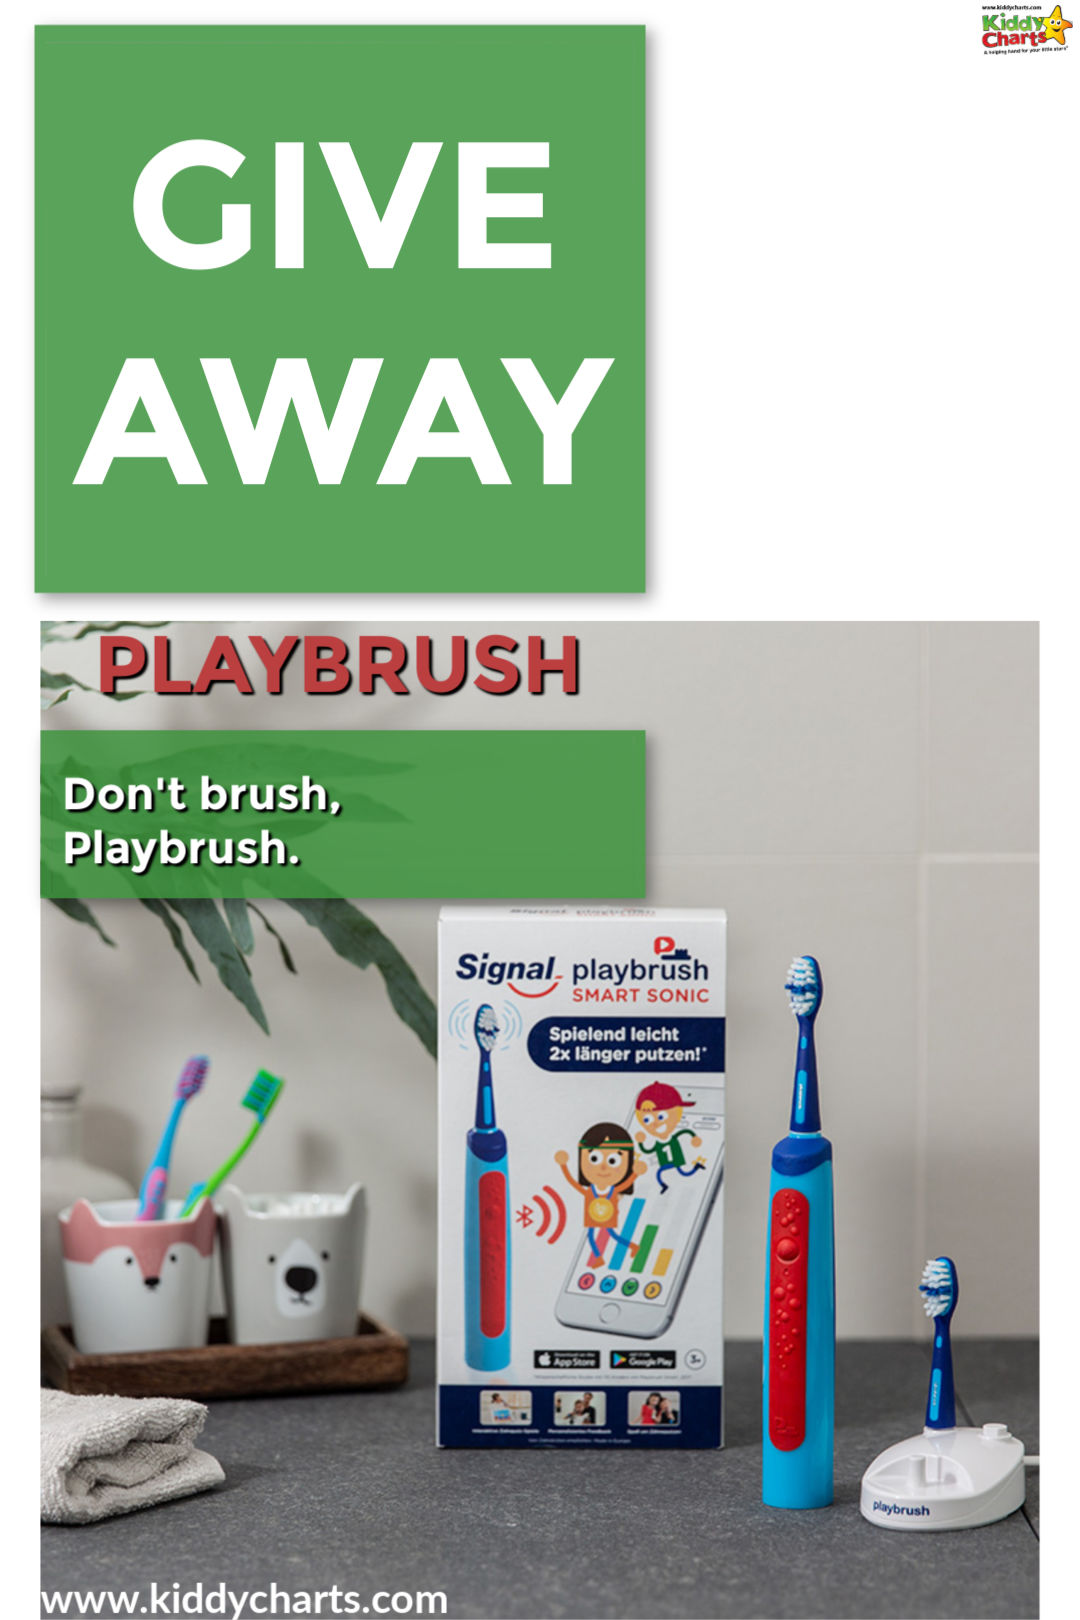 Pop over and enter our giveaway for a Playbrush; make life easier at teeth cleaning time! Closes 30th Nov, 2018. #teeth #kids